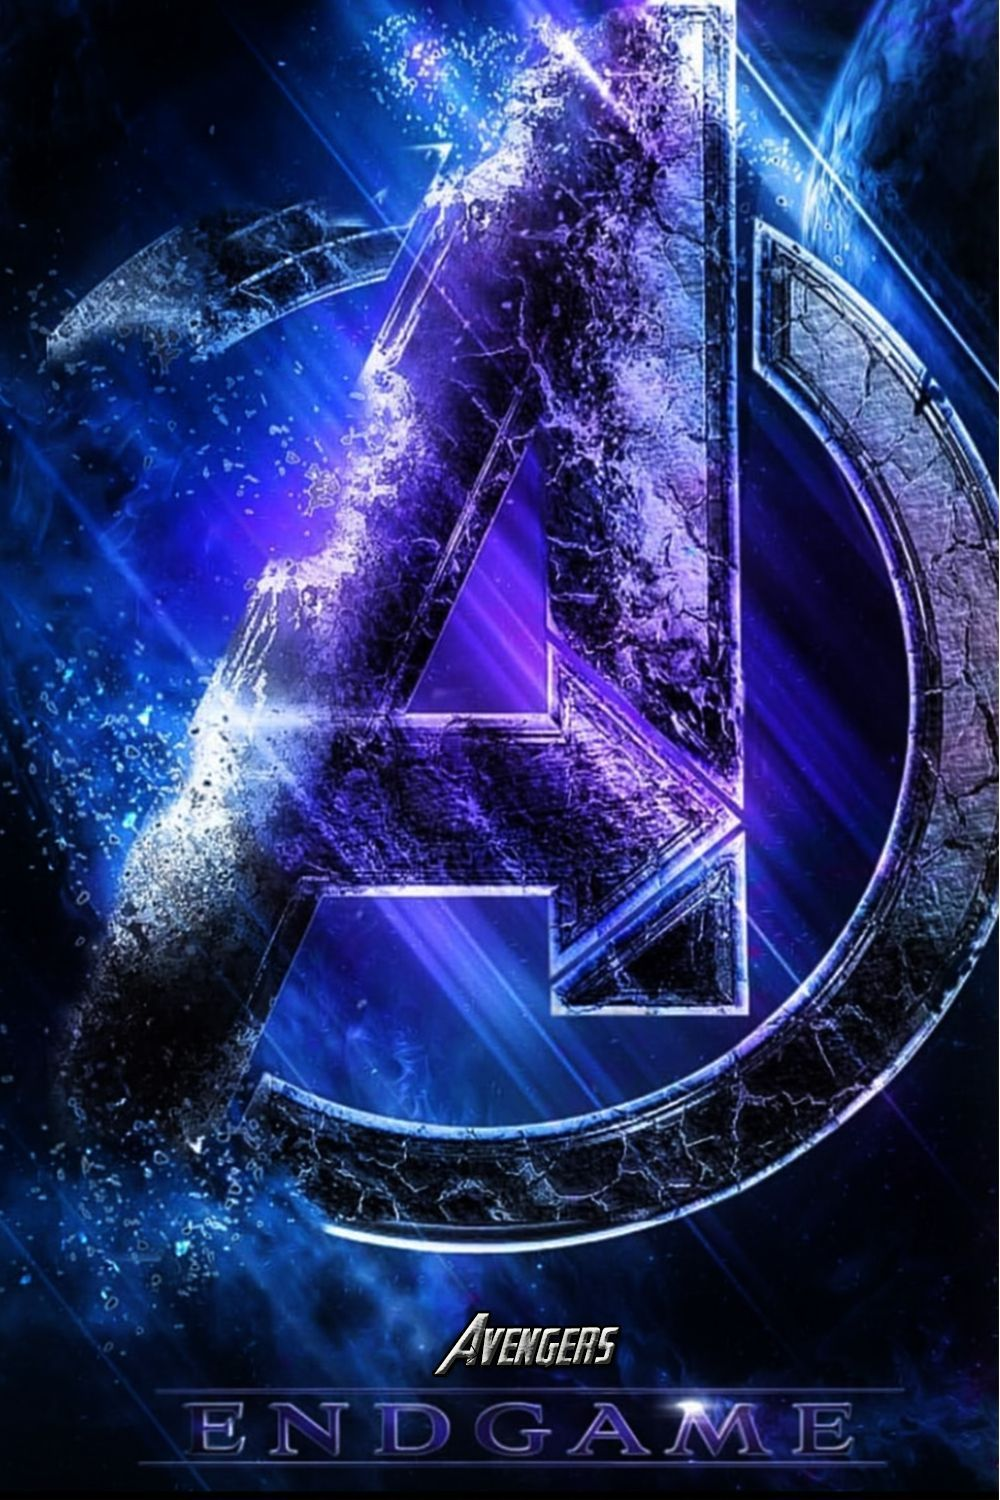 Avengers Logo Wallpaper 4k In 2020 Avengers Wallpaper Marvel Wallpaper Avengers Logo